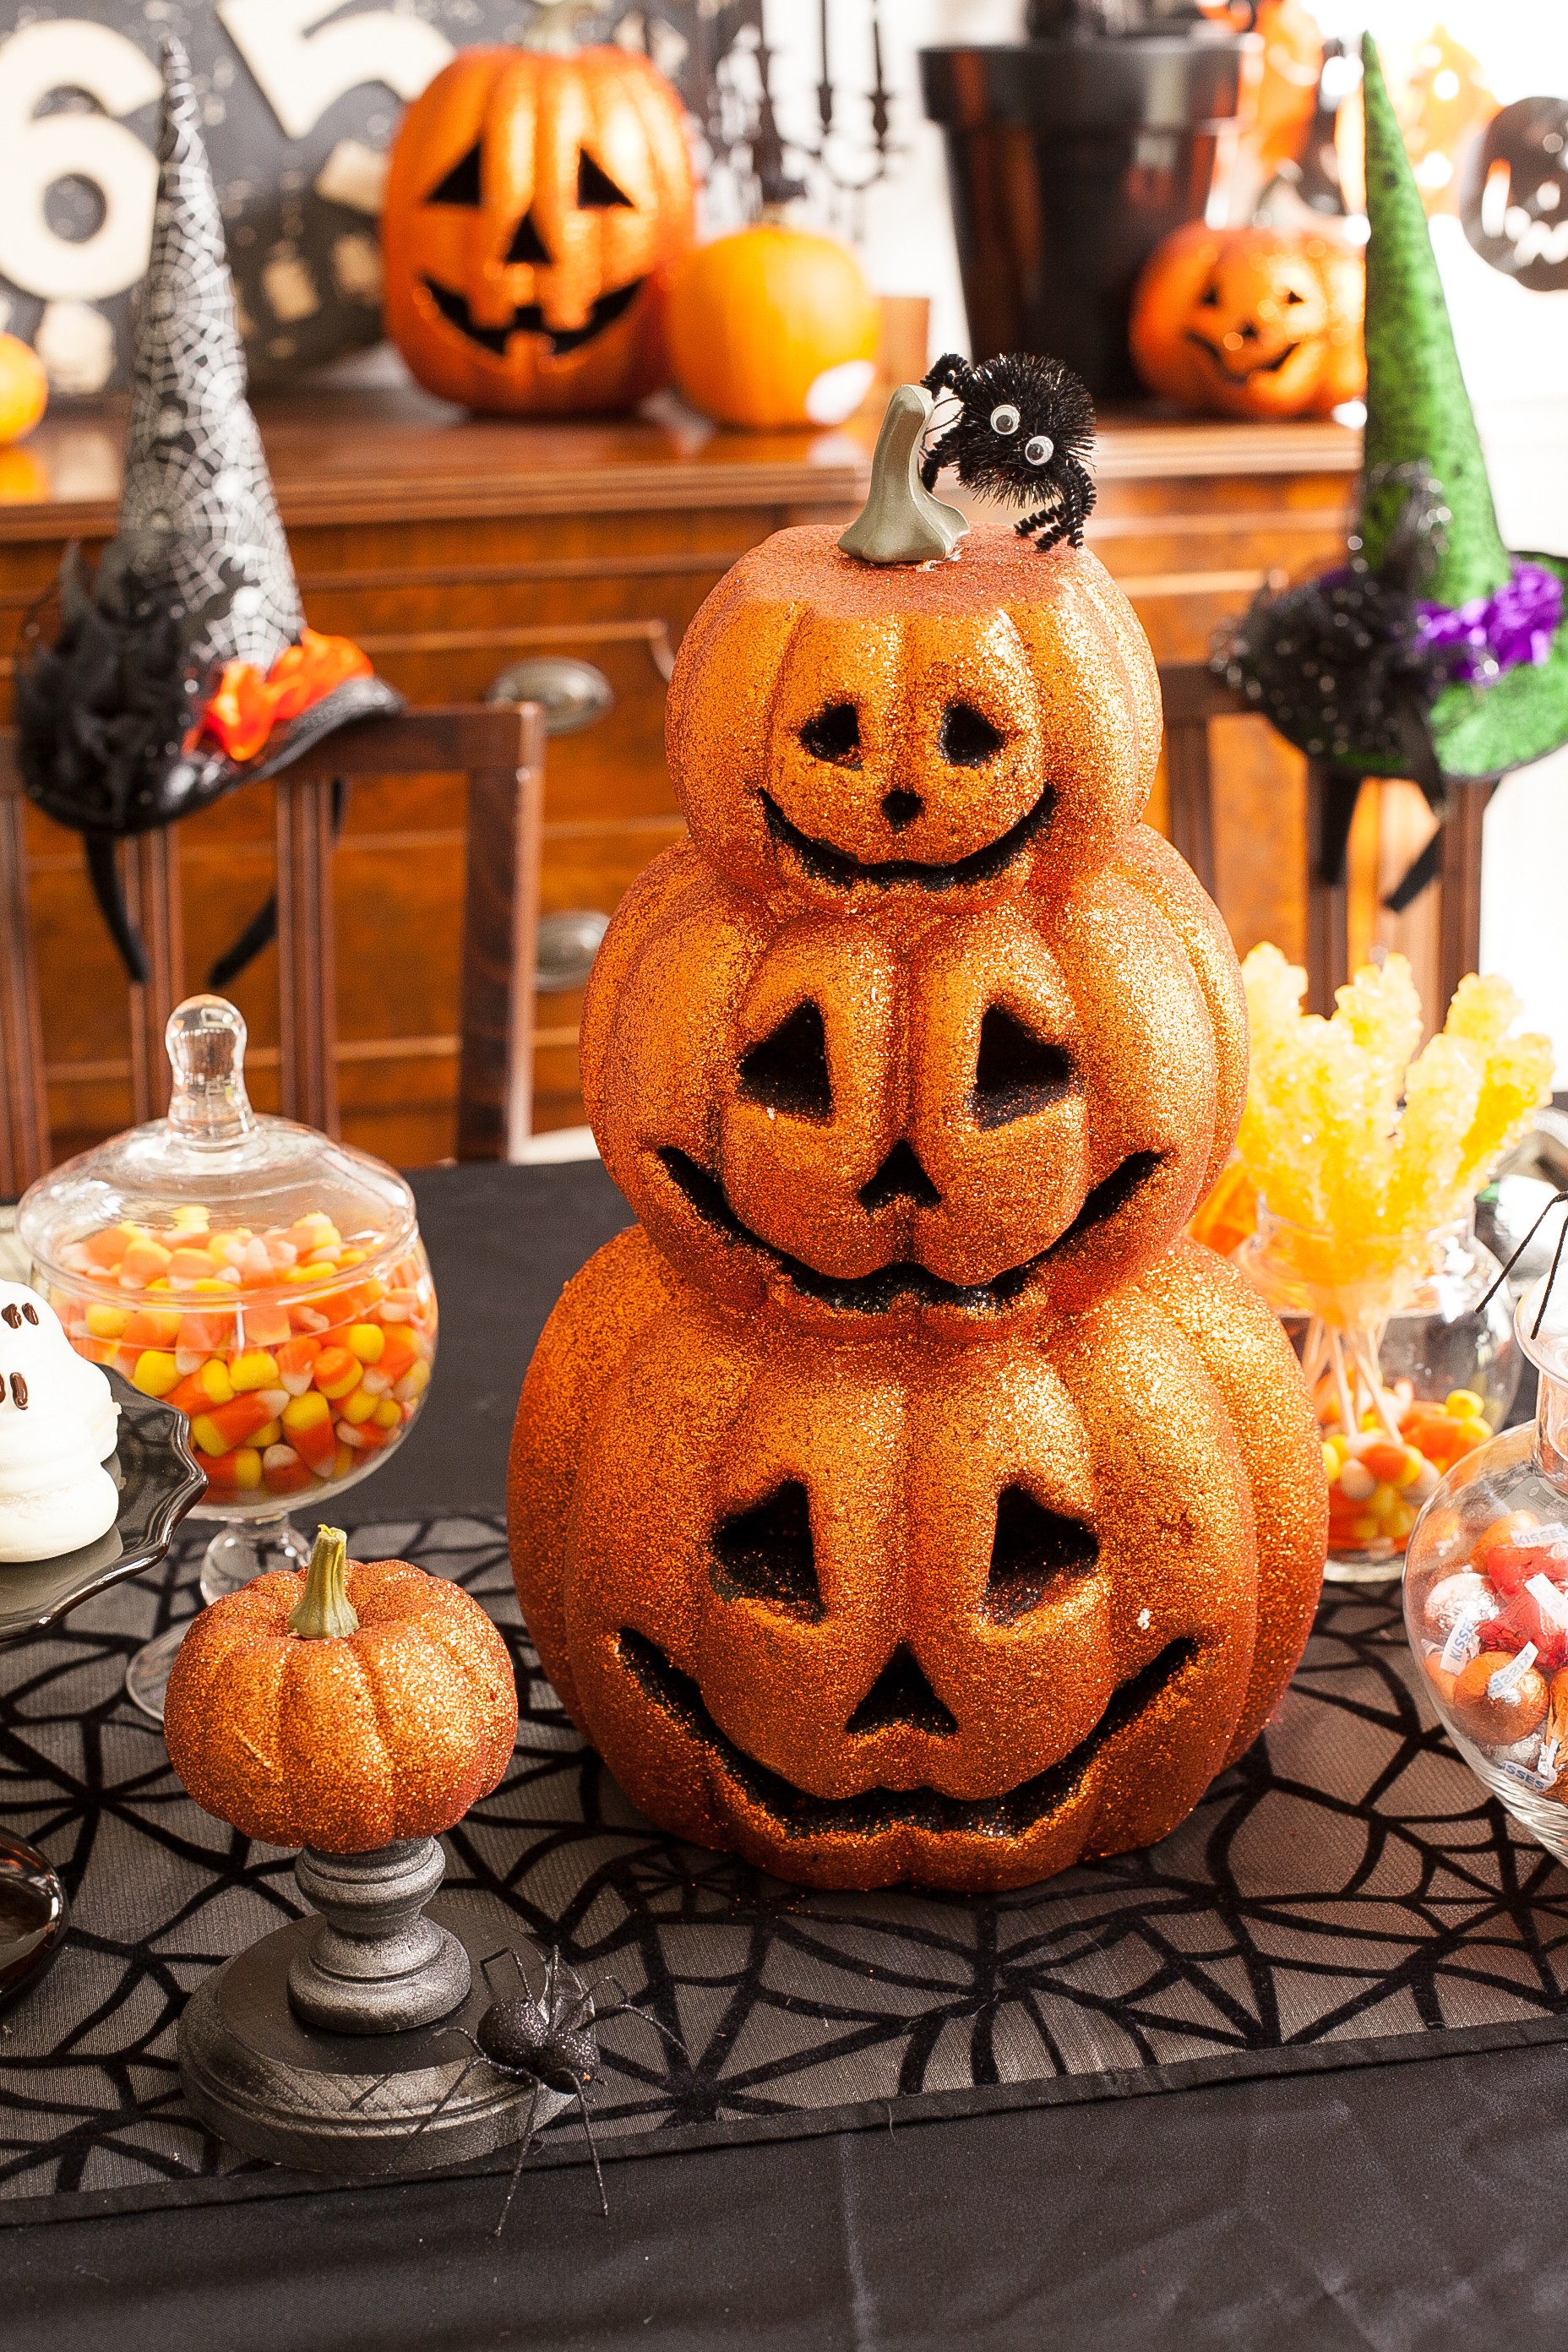 Crafty Halloween Playdate: Spooky Necklaces and Creepy Crawly JELL-O JIGGLERS